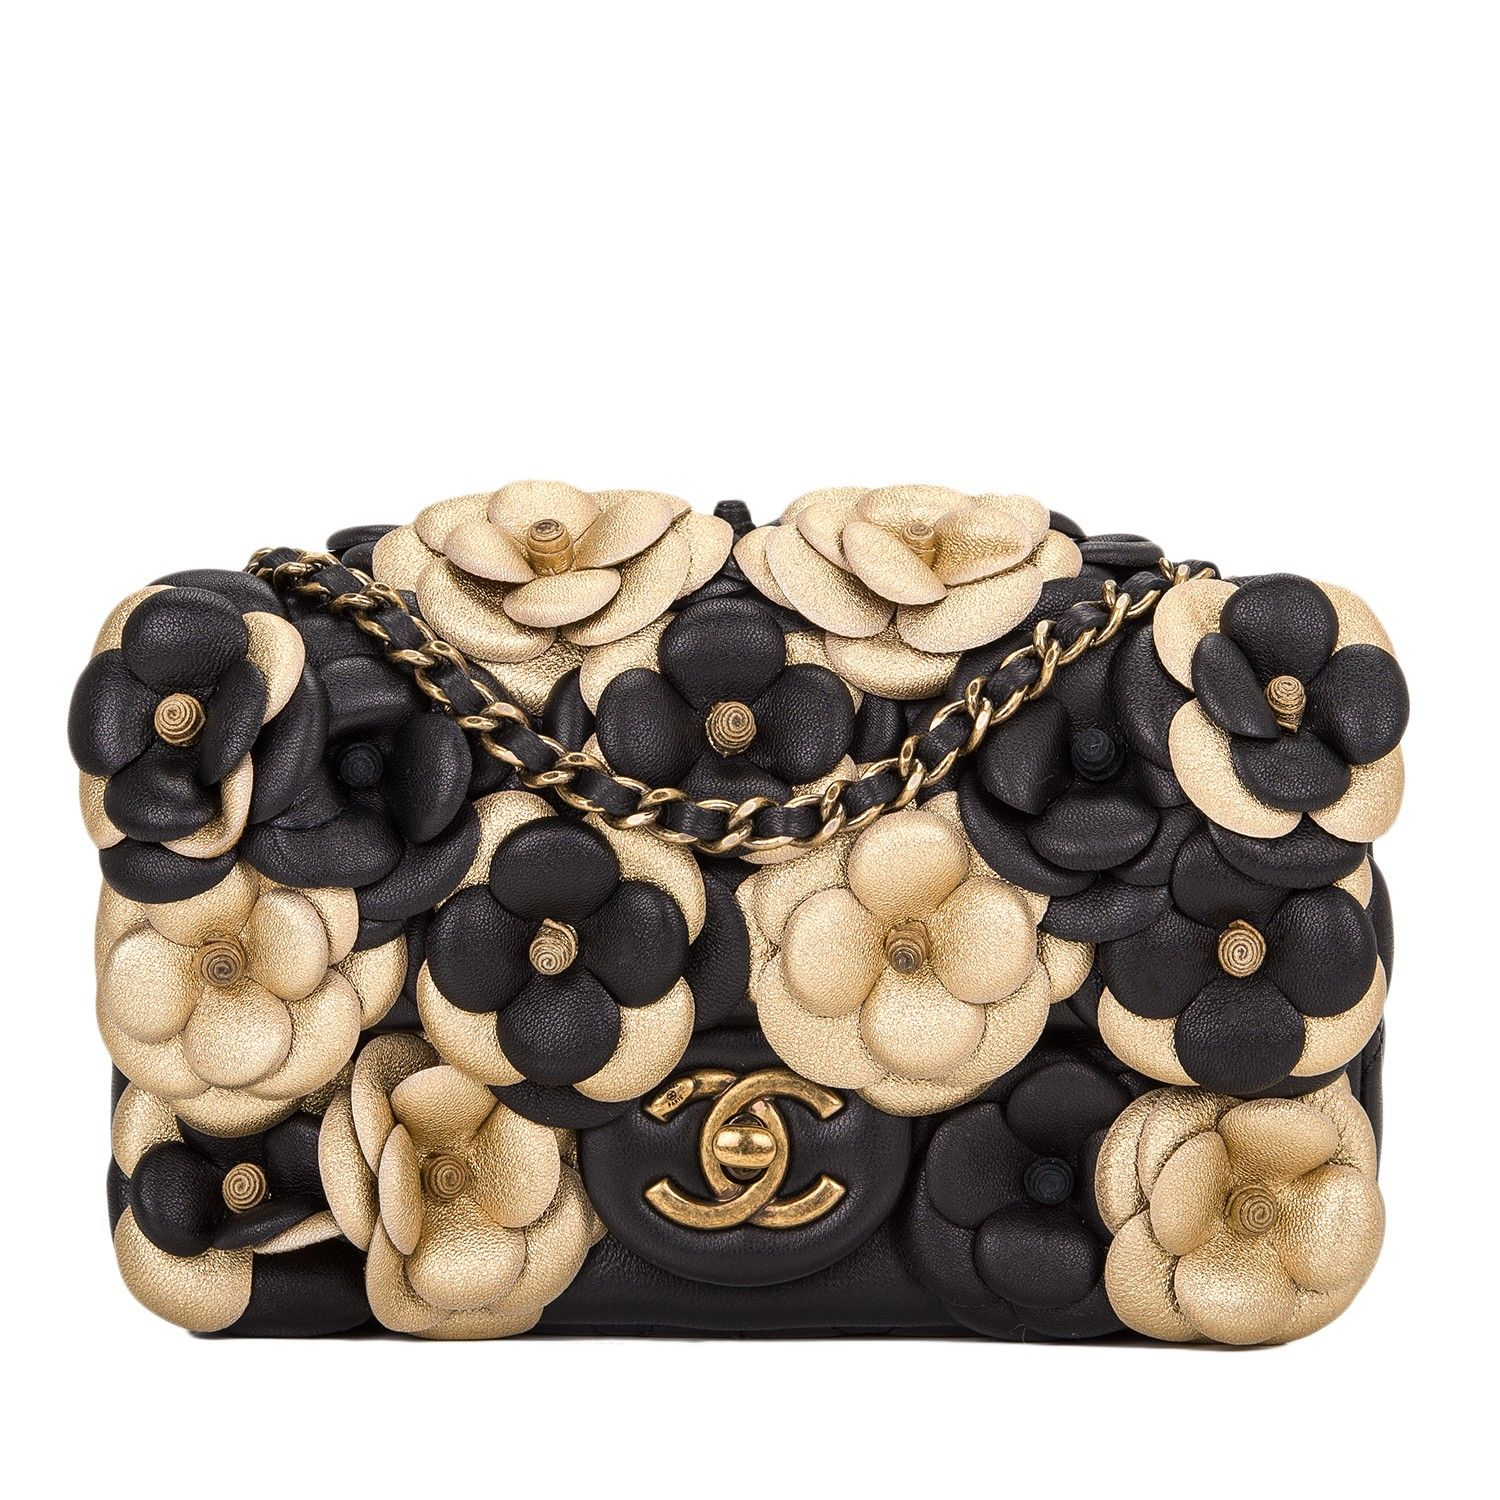 4d06a9b37b55 Chanel Black Camellia Flap Bag - This Camellia flap bag featuring beautiful  hand stitched black and gold leather camellia flowers is fast becoming a ...